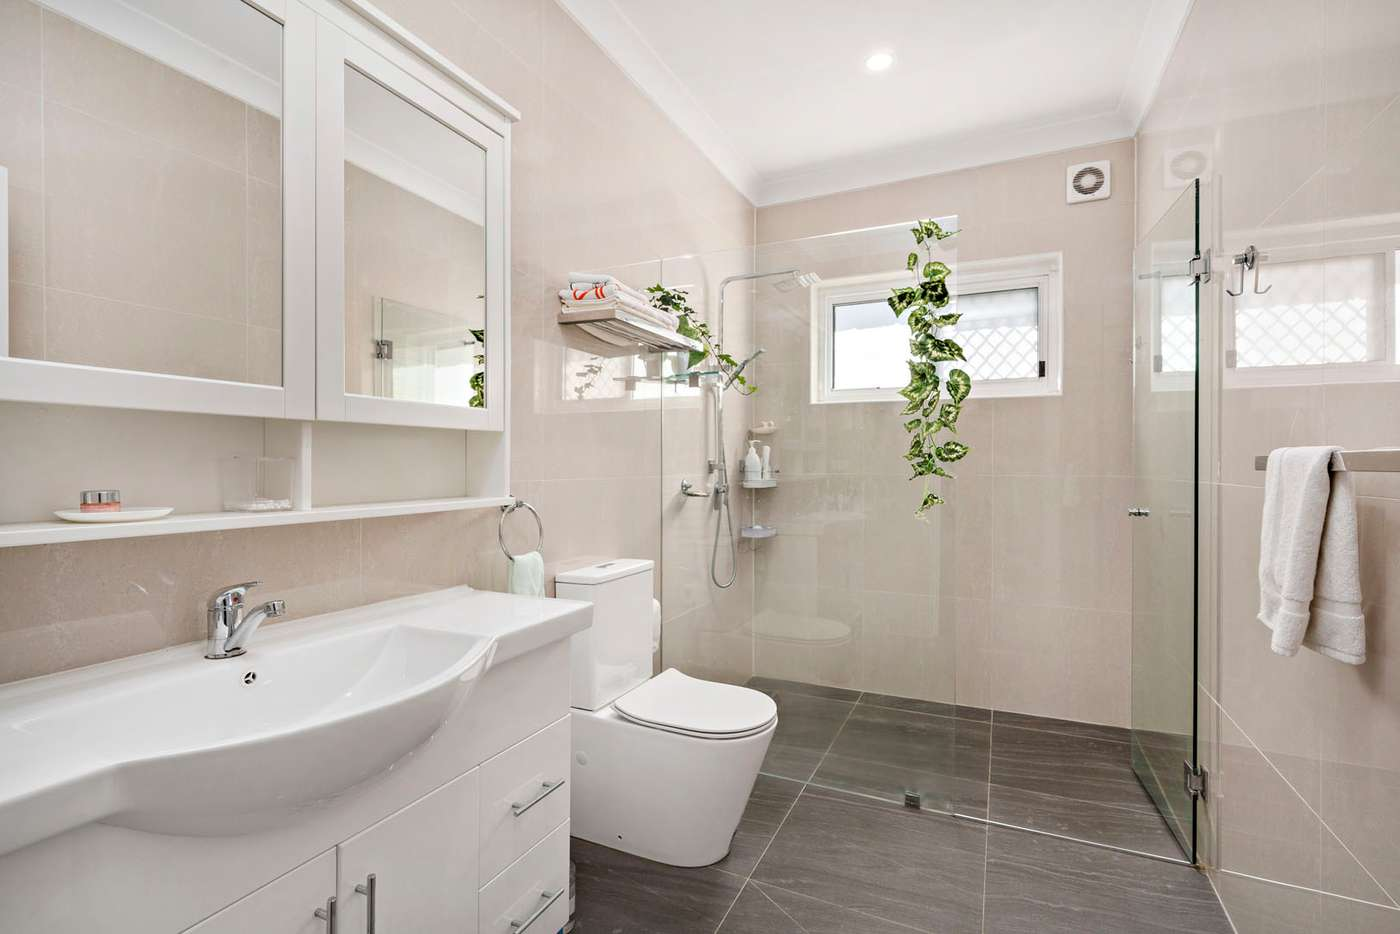 Sixth view of Homely unit listing, 3/9 Queen Street, Ashfield NSW 2131